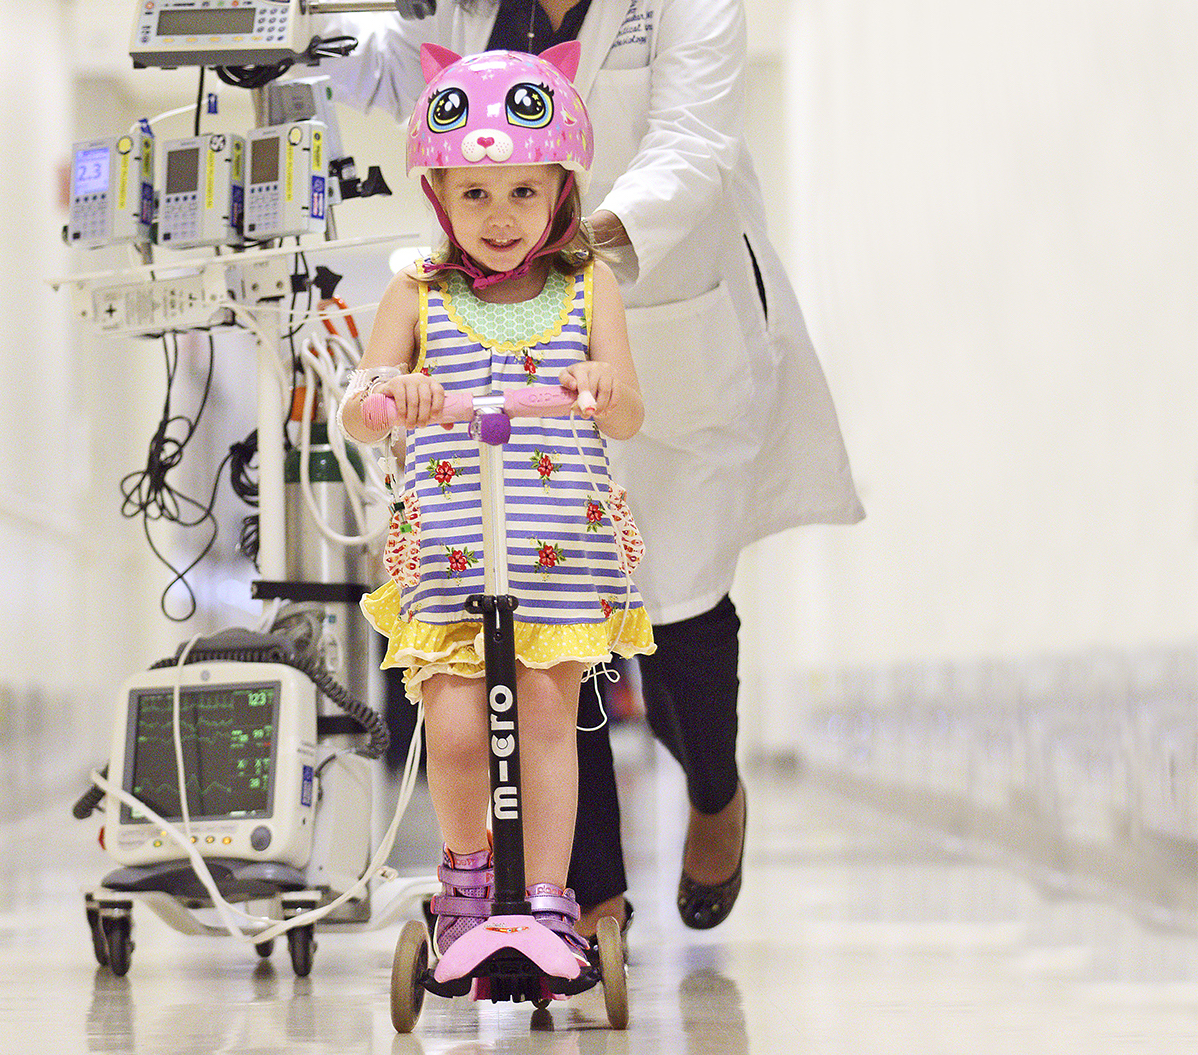 ee6d1bce9e1 20 Top Children's Hospitals in Innovation and Technology | Parents